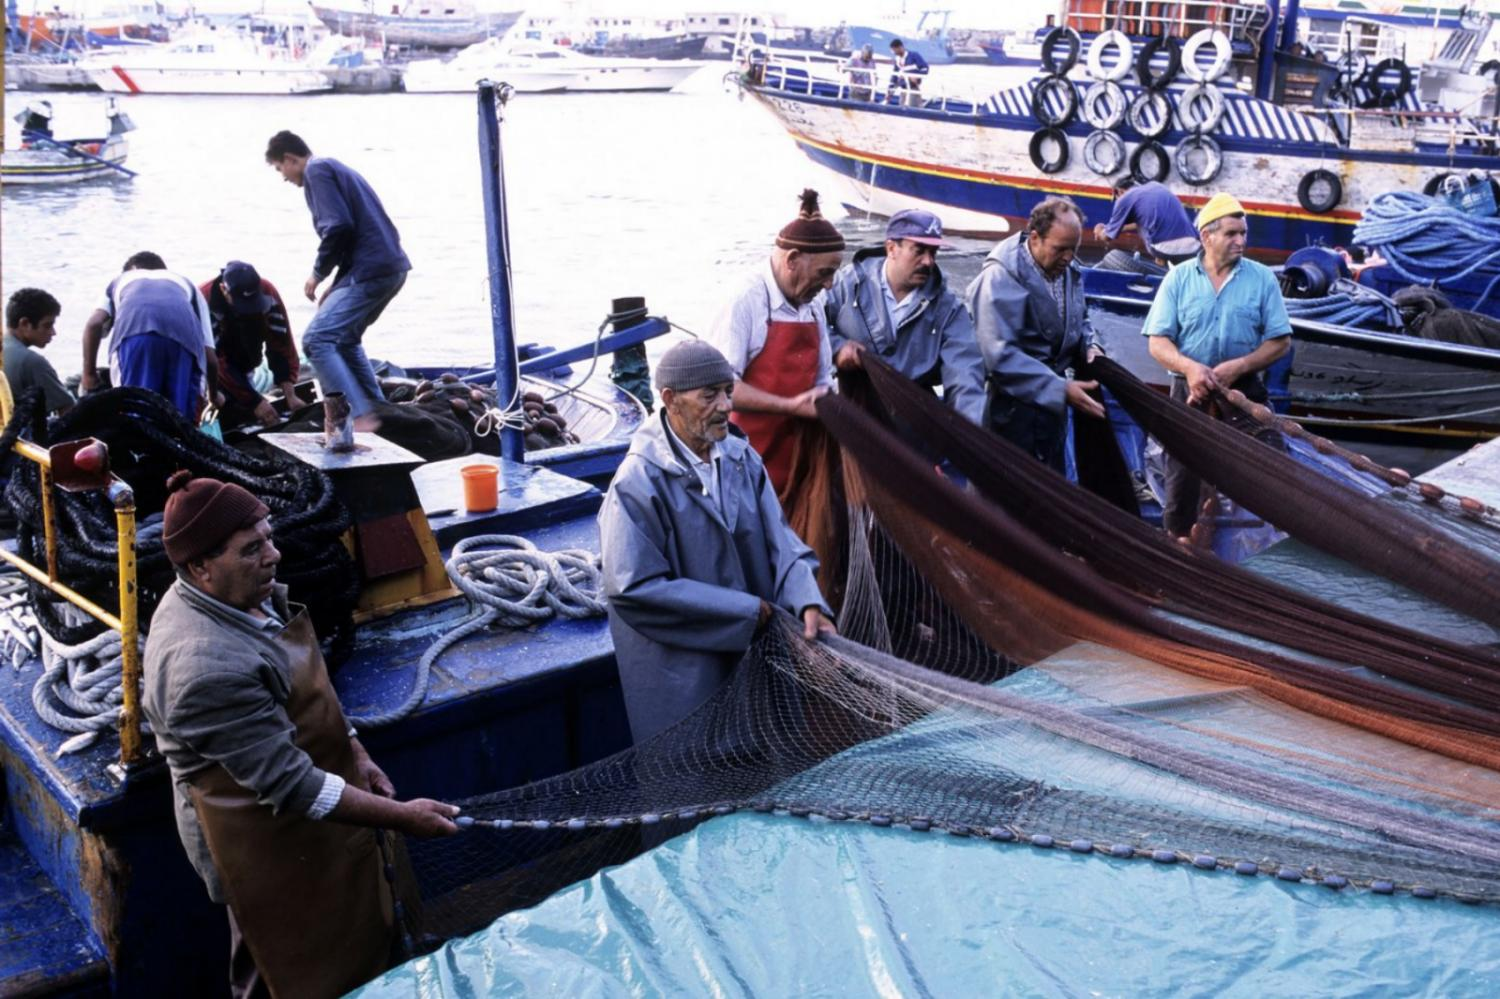 Fishermen at the harbour of Kelibia. (Credit: Hemis / Alamy Stock Photo)